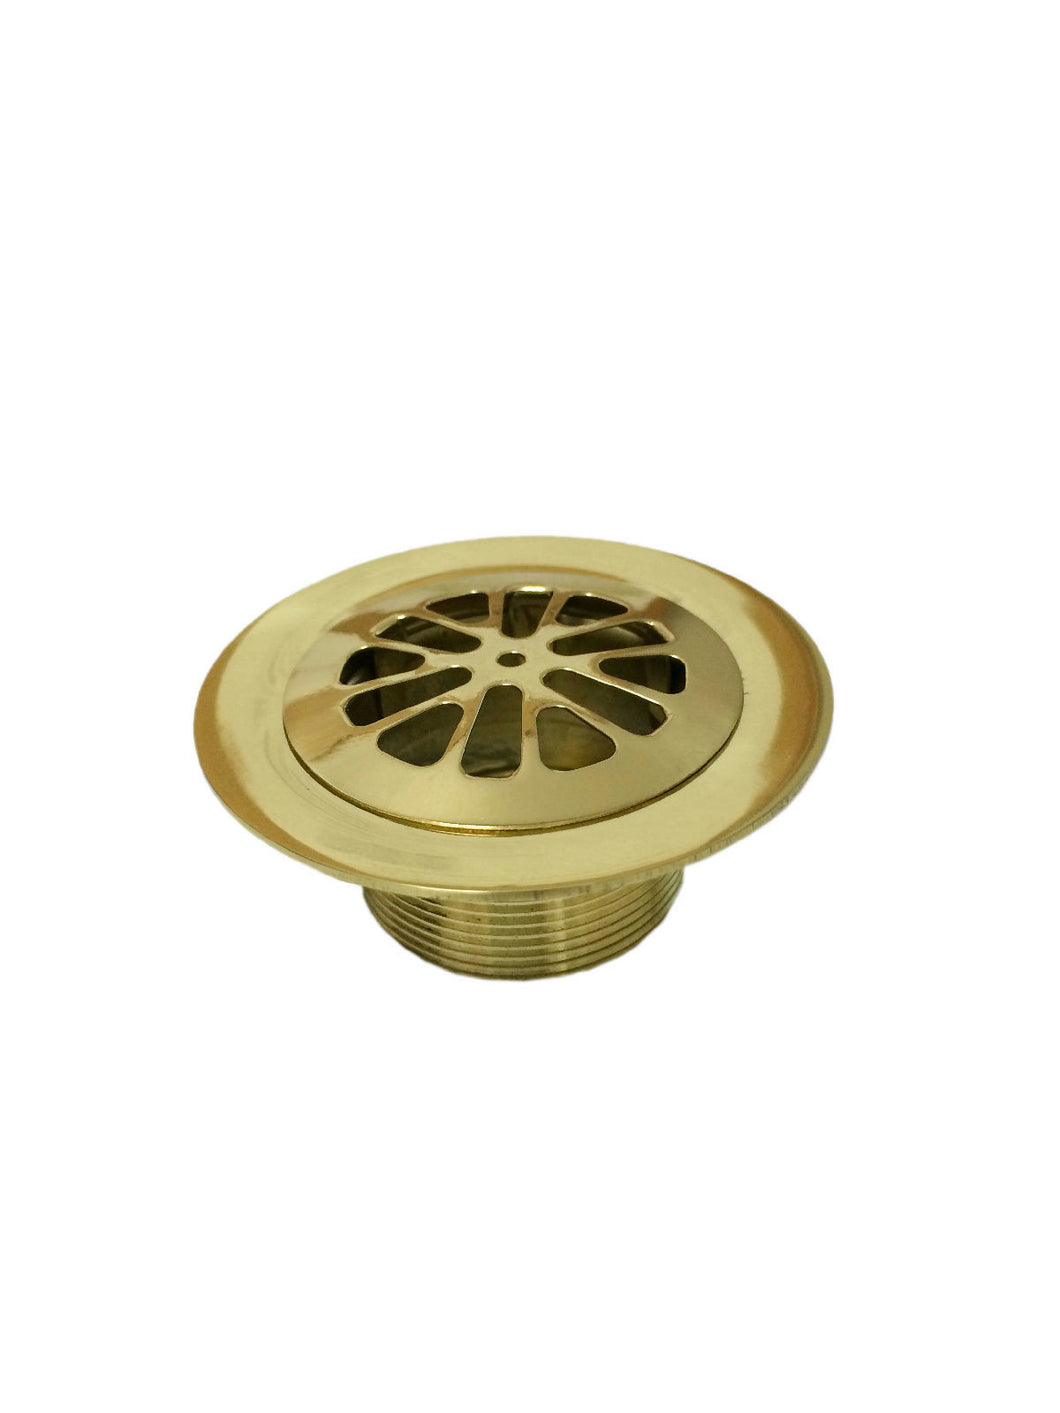 Lee Meyers Price Pfister Bath Drain w/ Strainer, Polished Brass, BPP972-721P - Jenco Wholesale